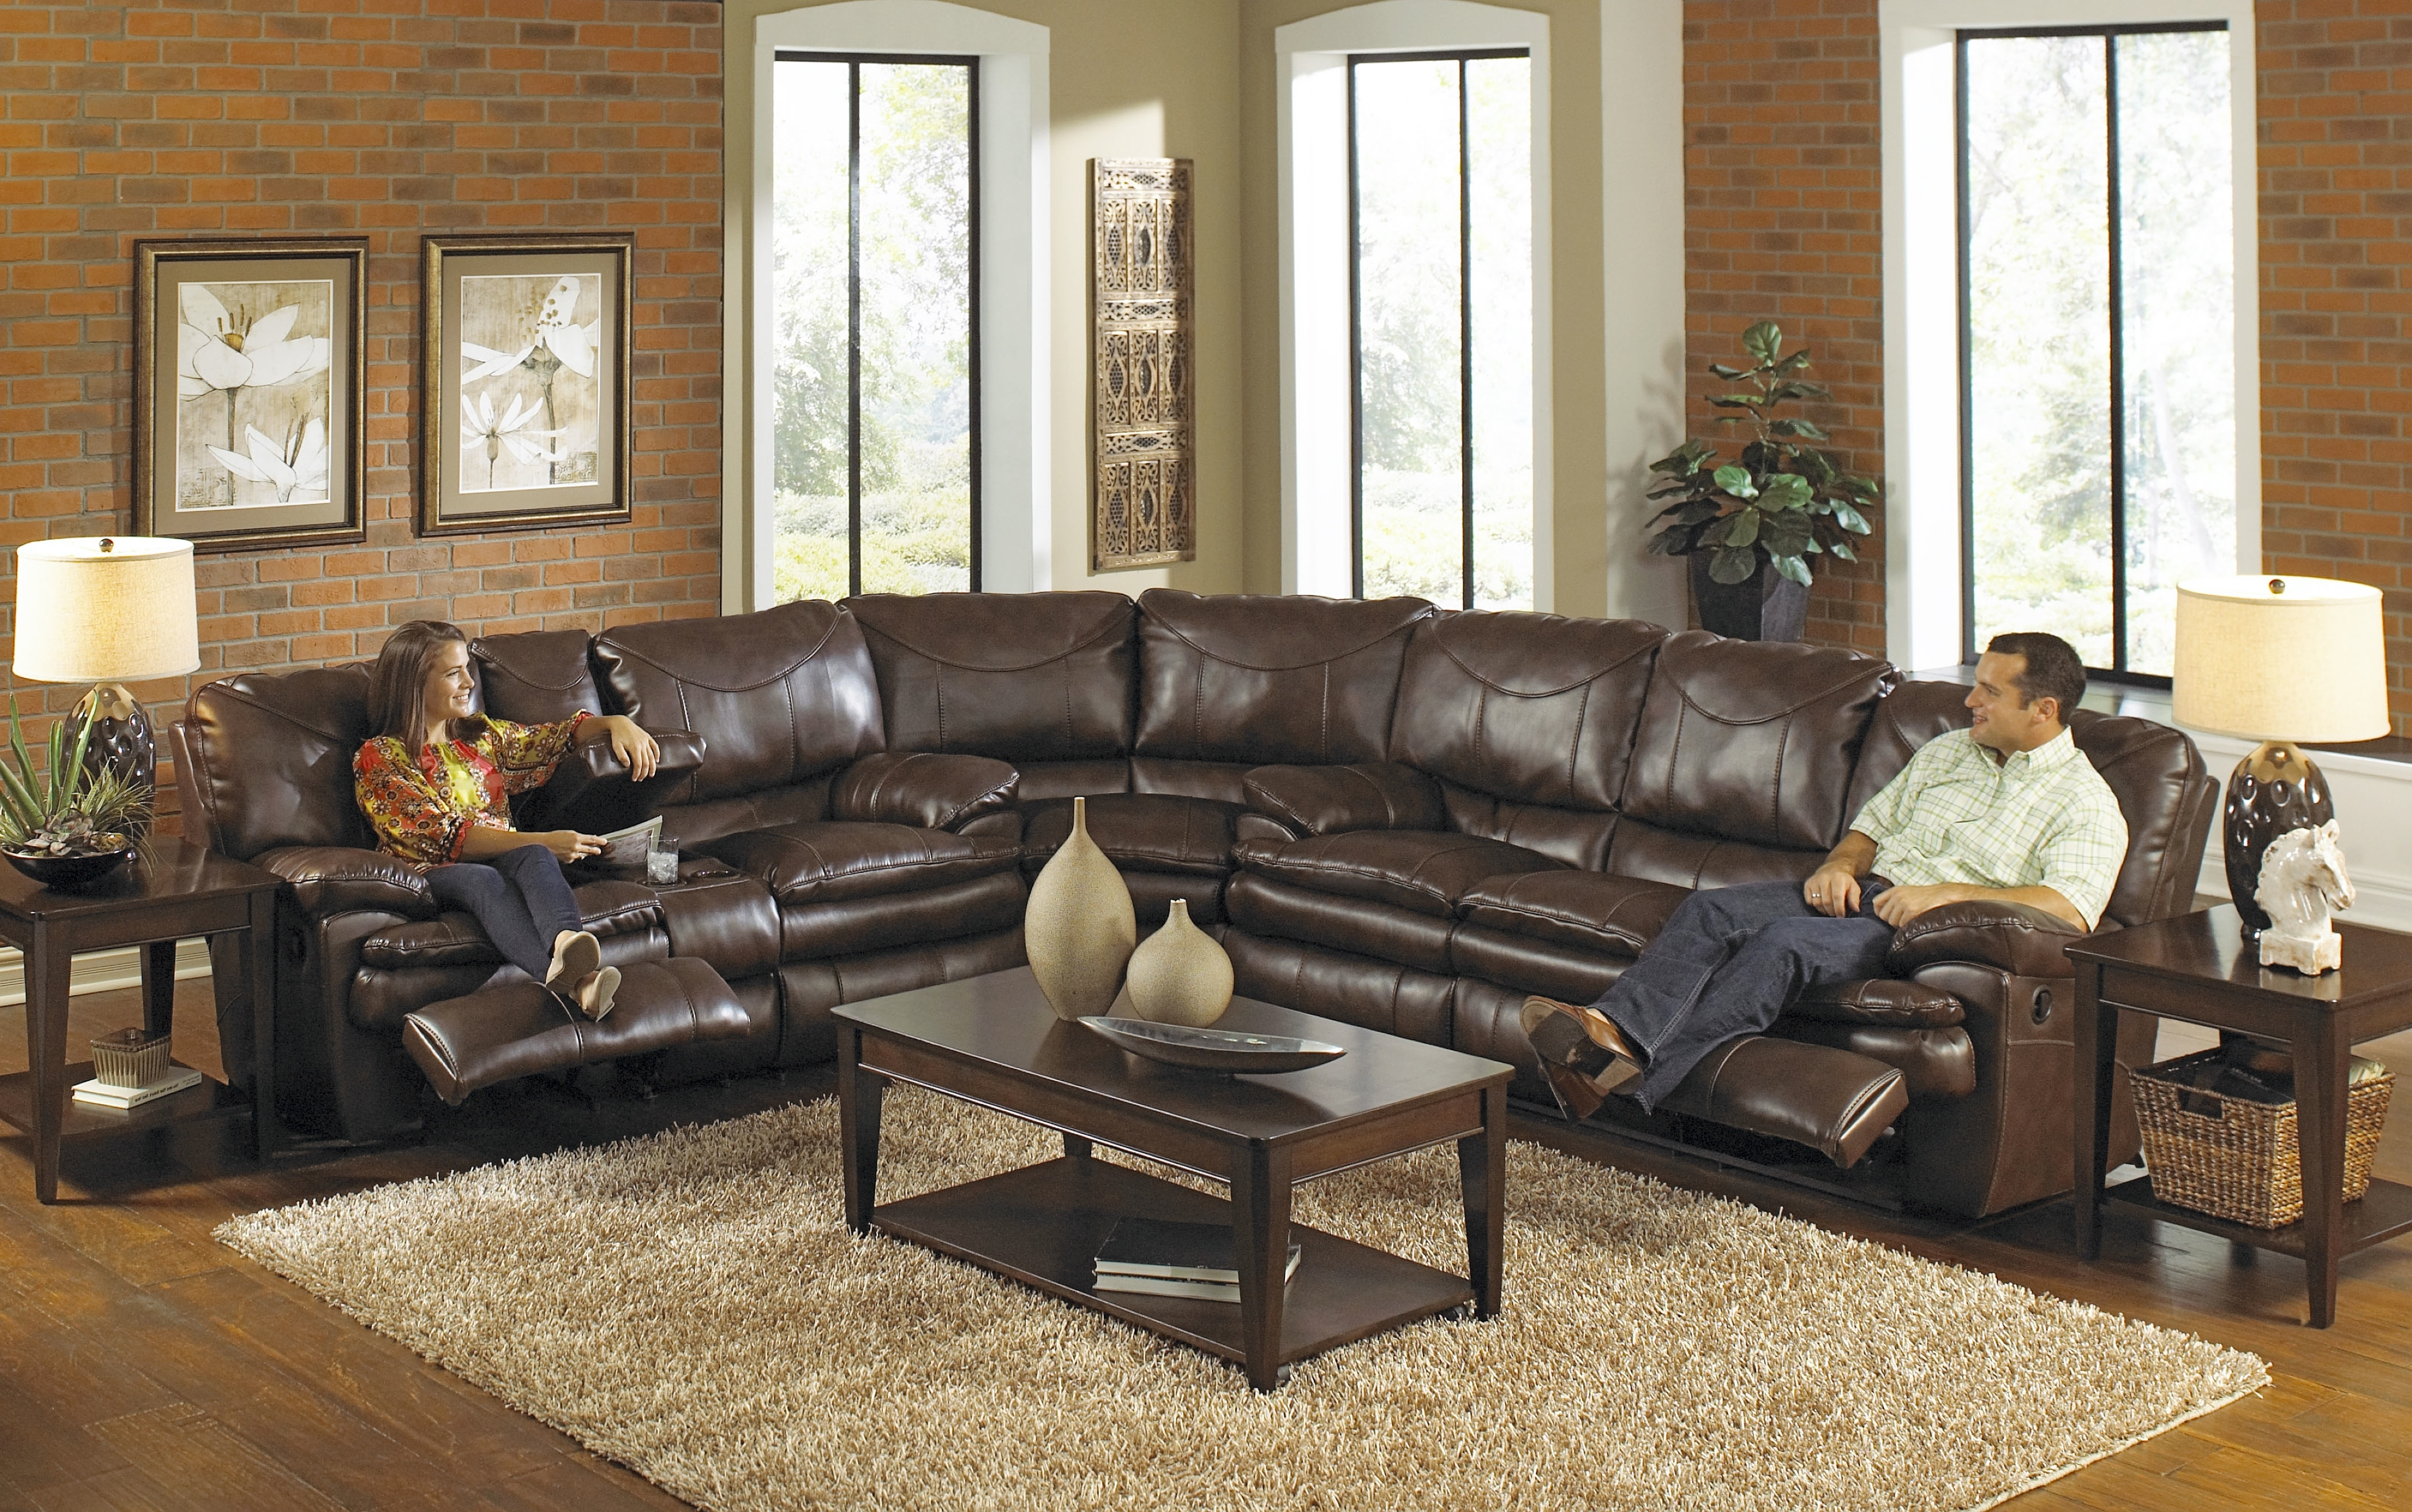 2018 Haynes Sectional Sofas With Delivered Sofa With Chaise And Recliner Buy Large Sectional Sofas (View 17 of 20)